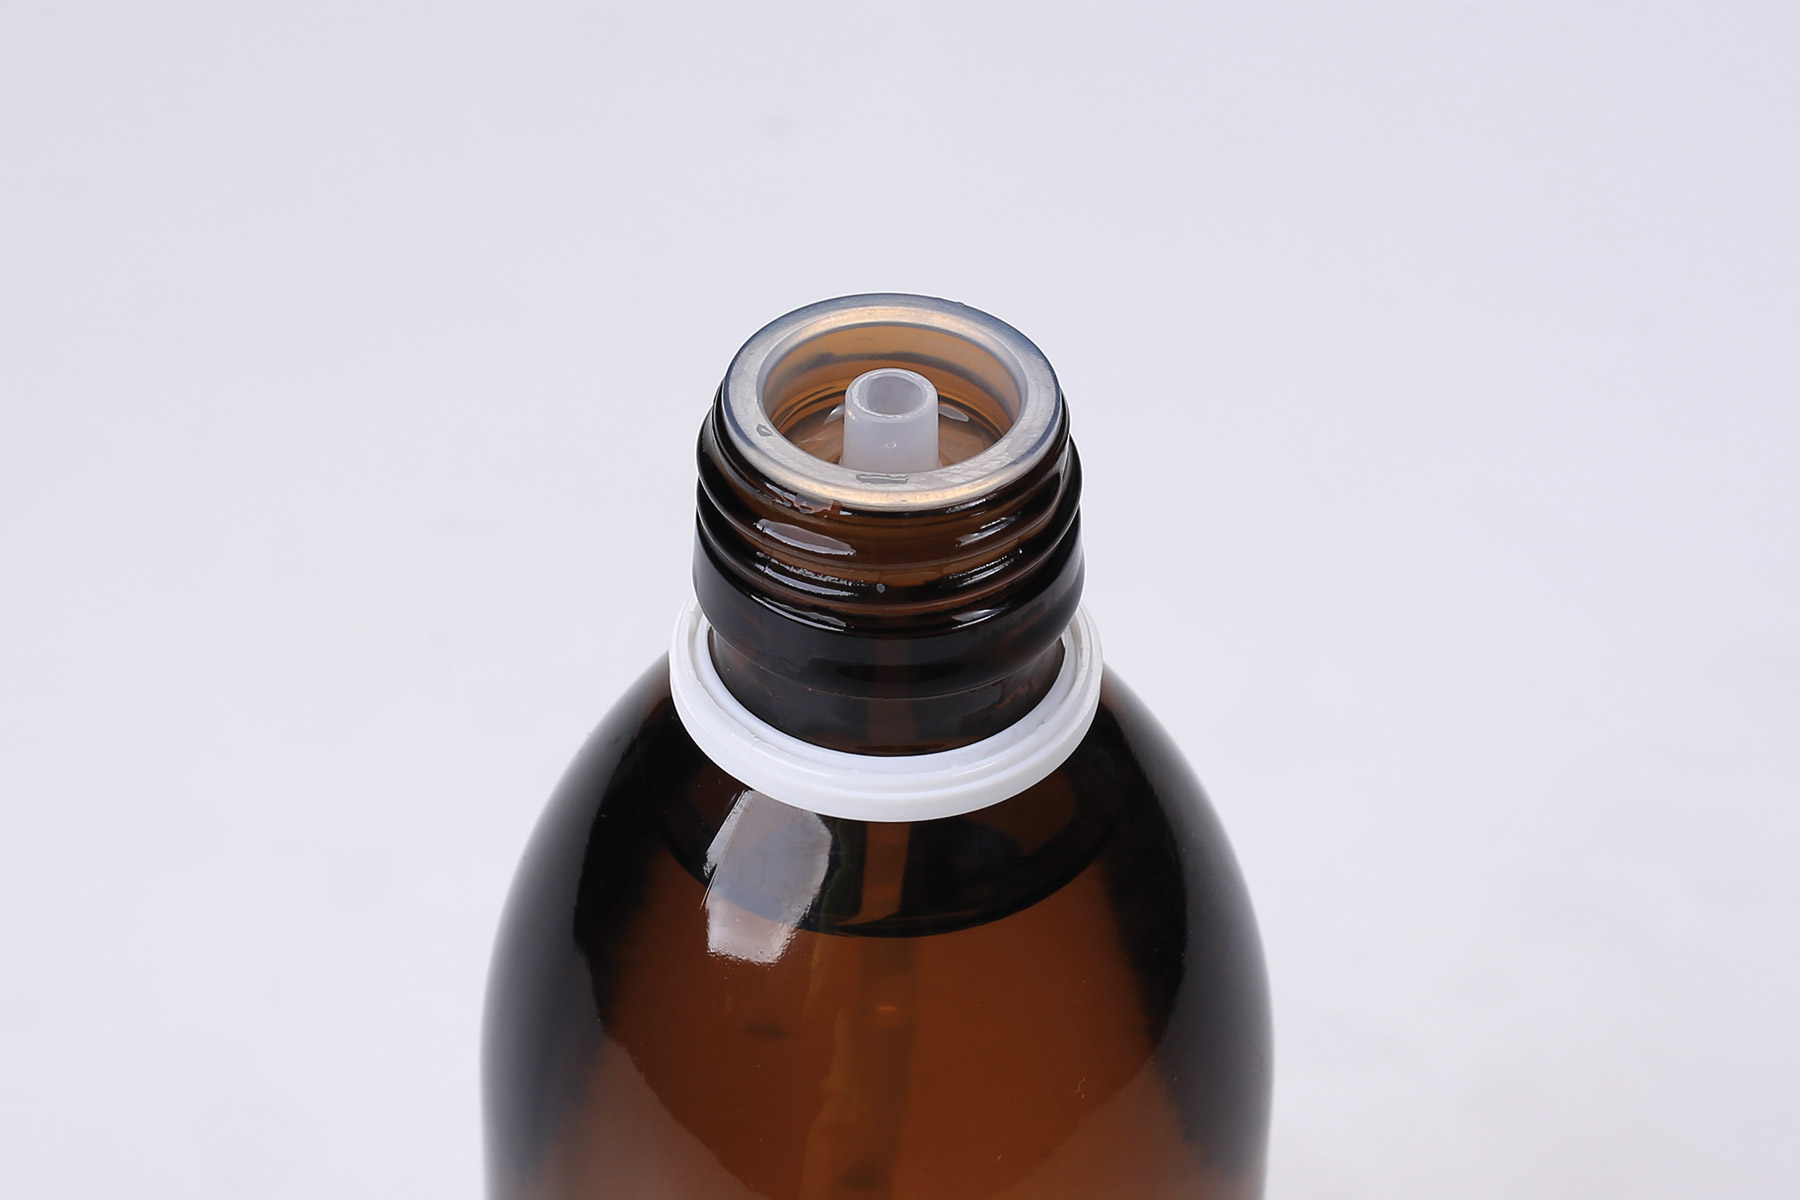 Special Connector on Bottle